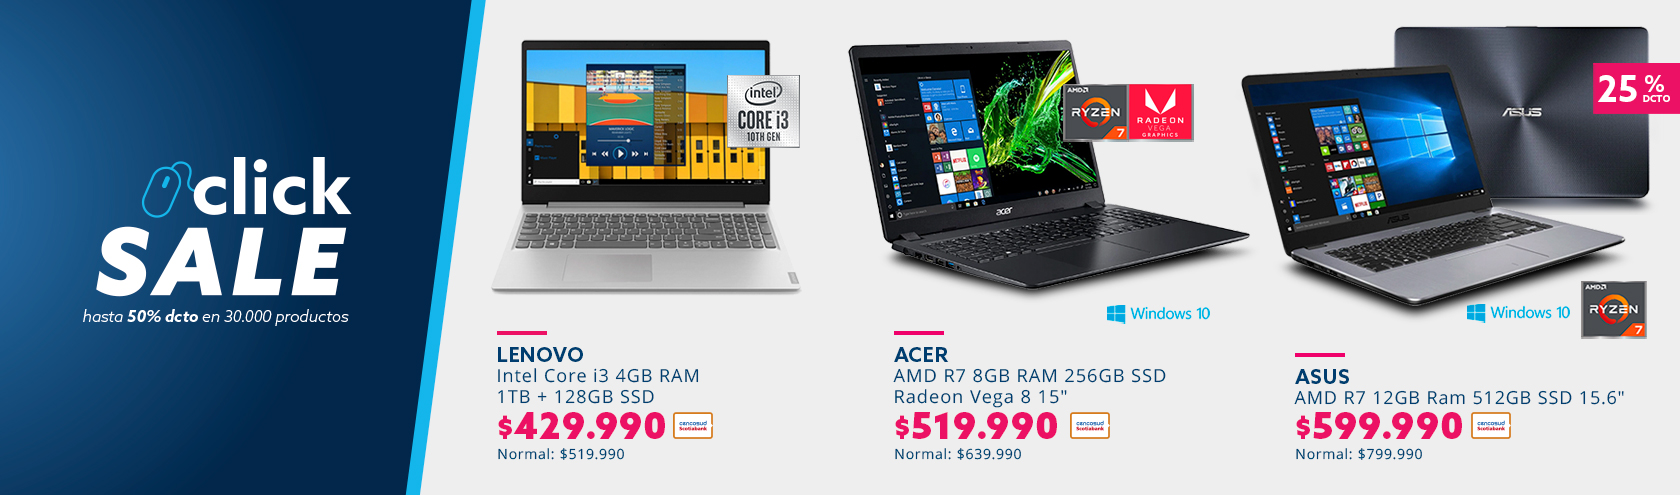 Notebooks Lenovo, Asus y Acer